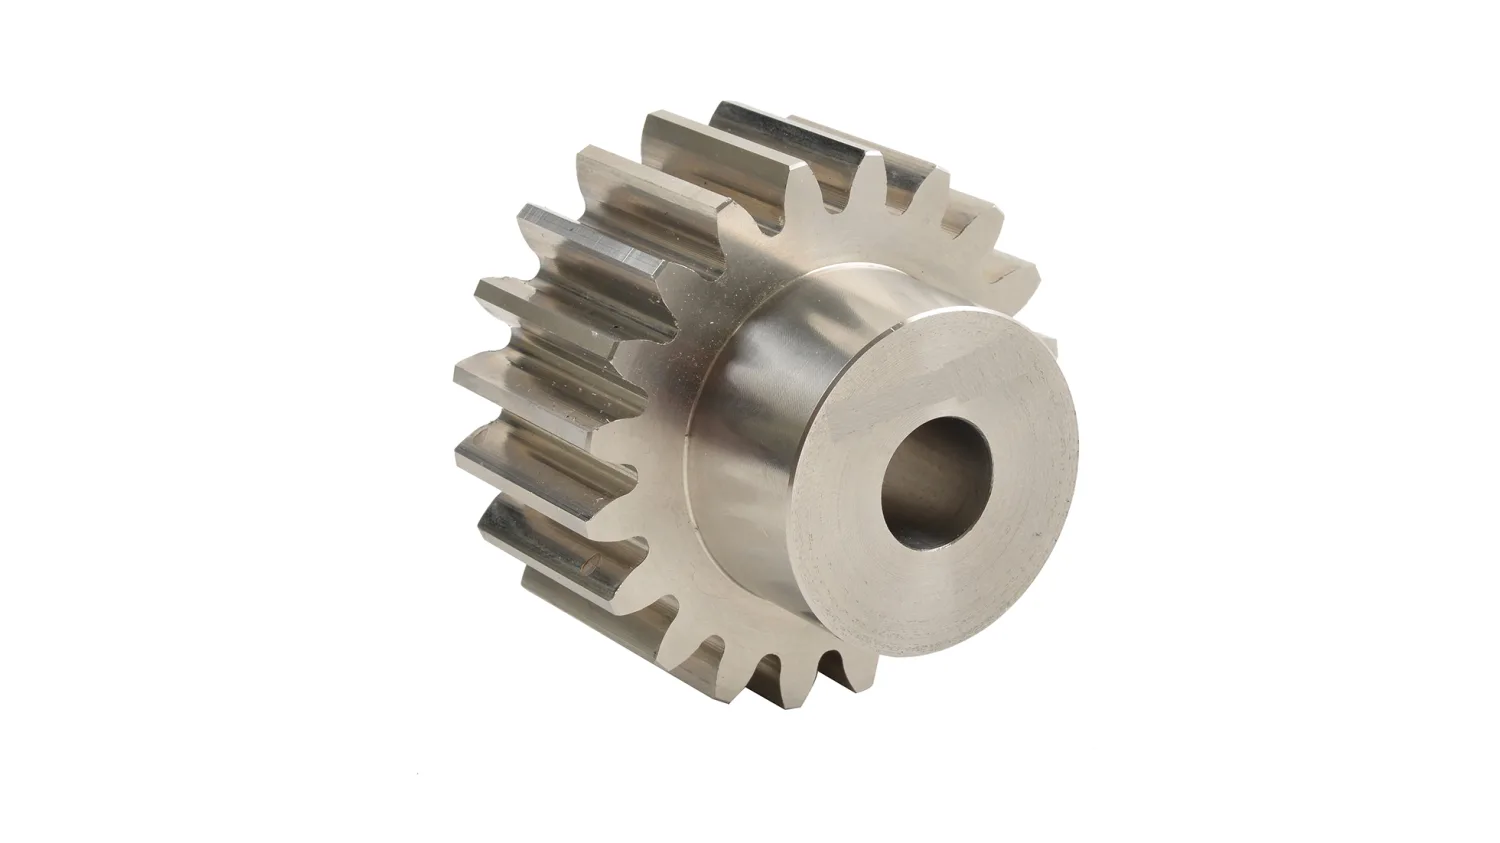 8-Mod-x-15-Tooth-Metric-Spur-Gear-in-Steel